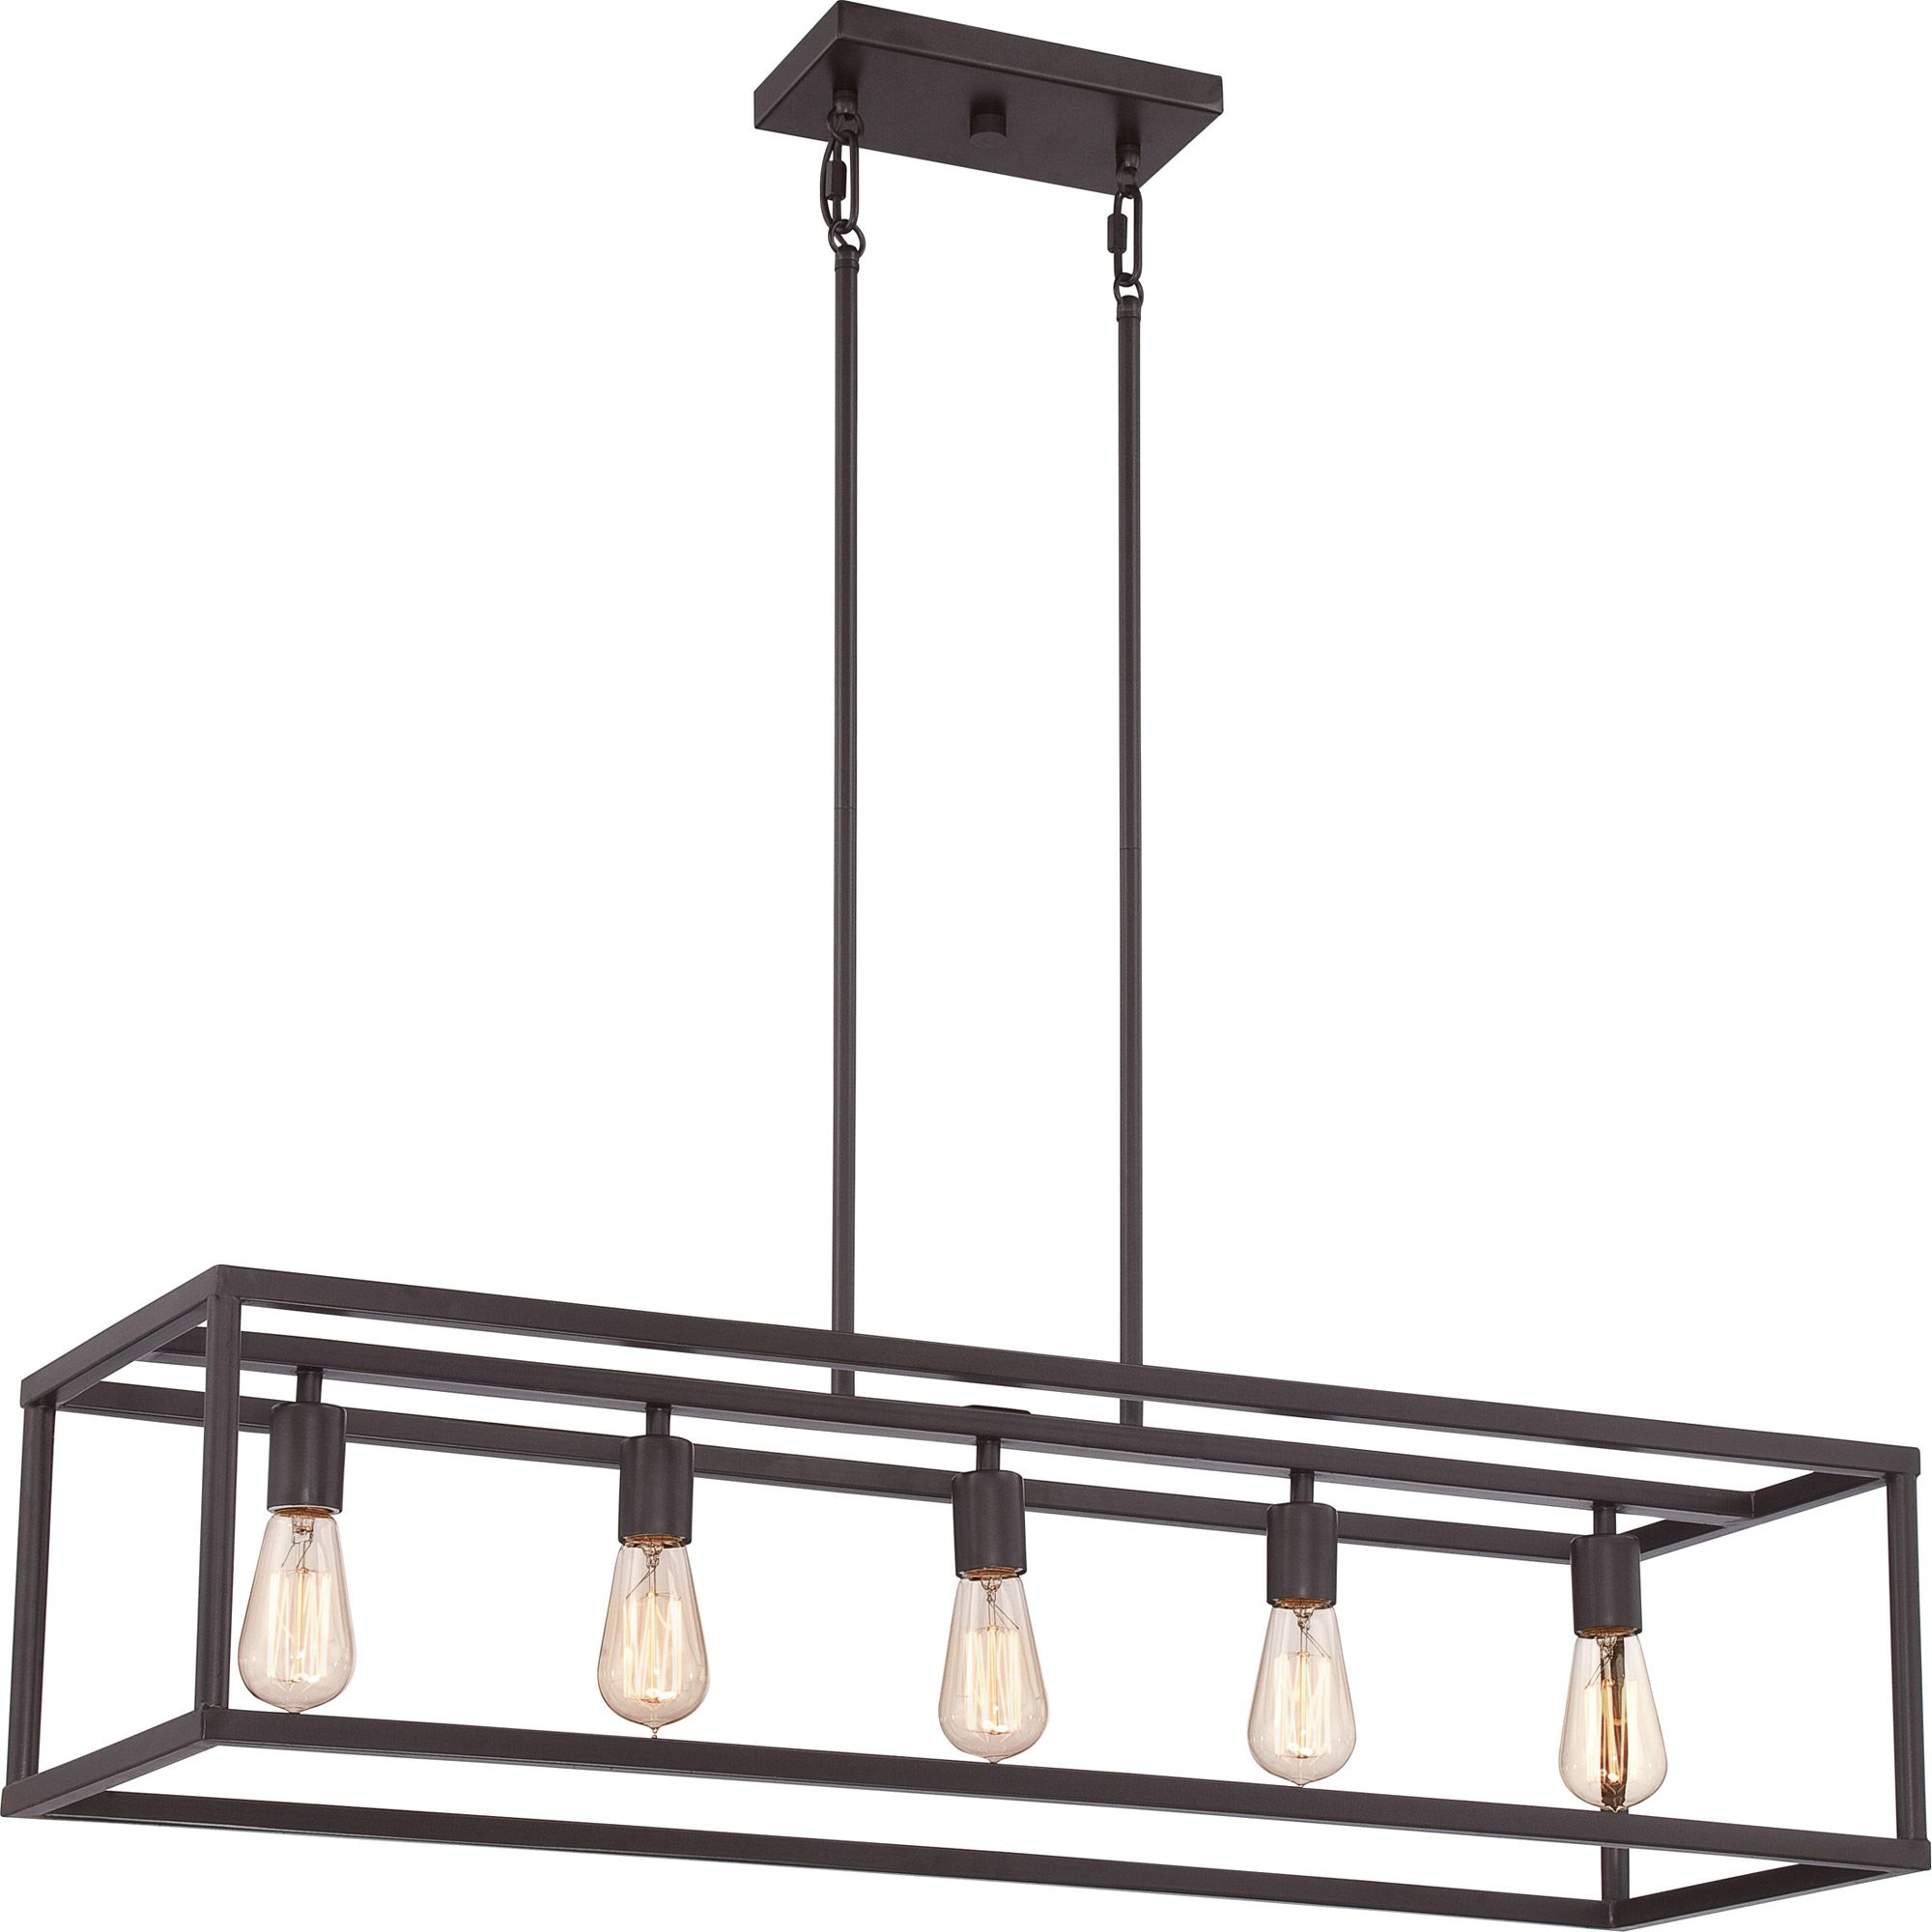 New Harbor Island Chandelier By Quoizel